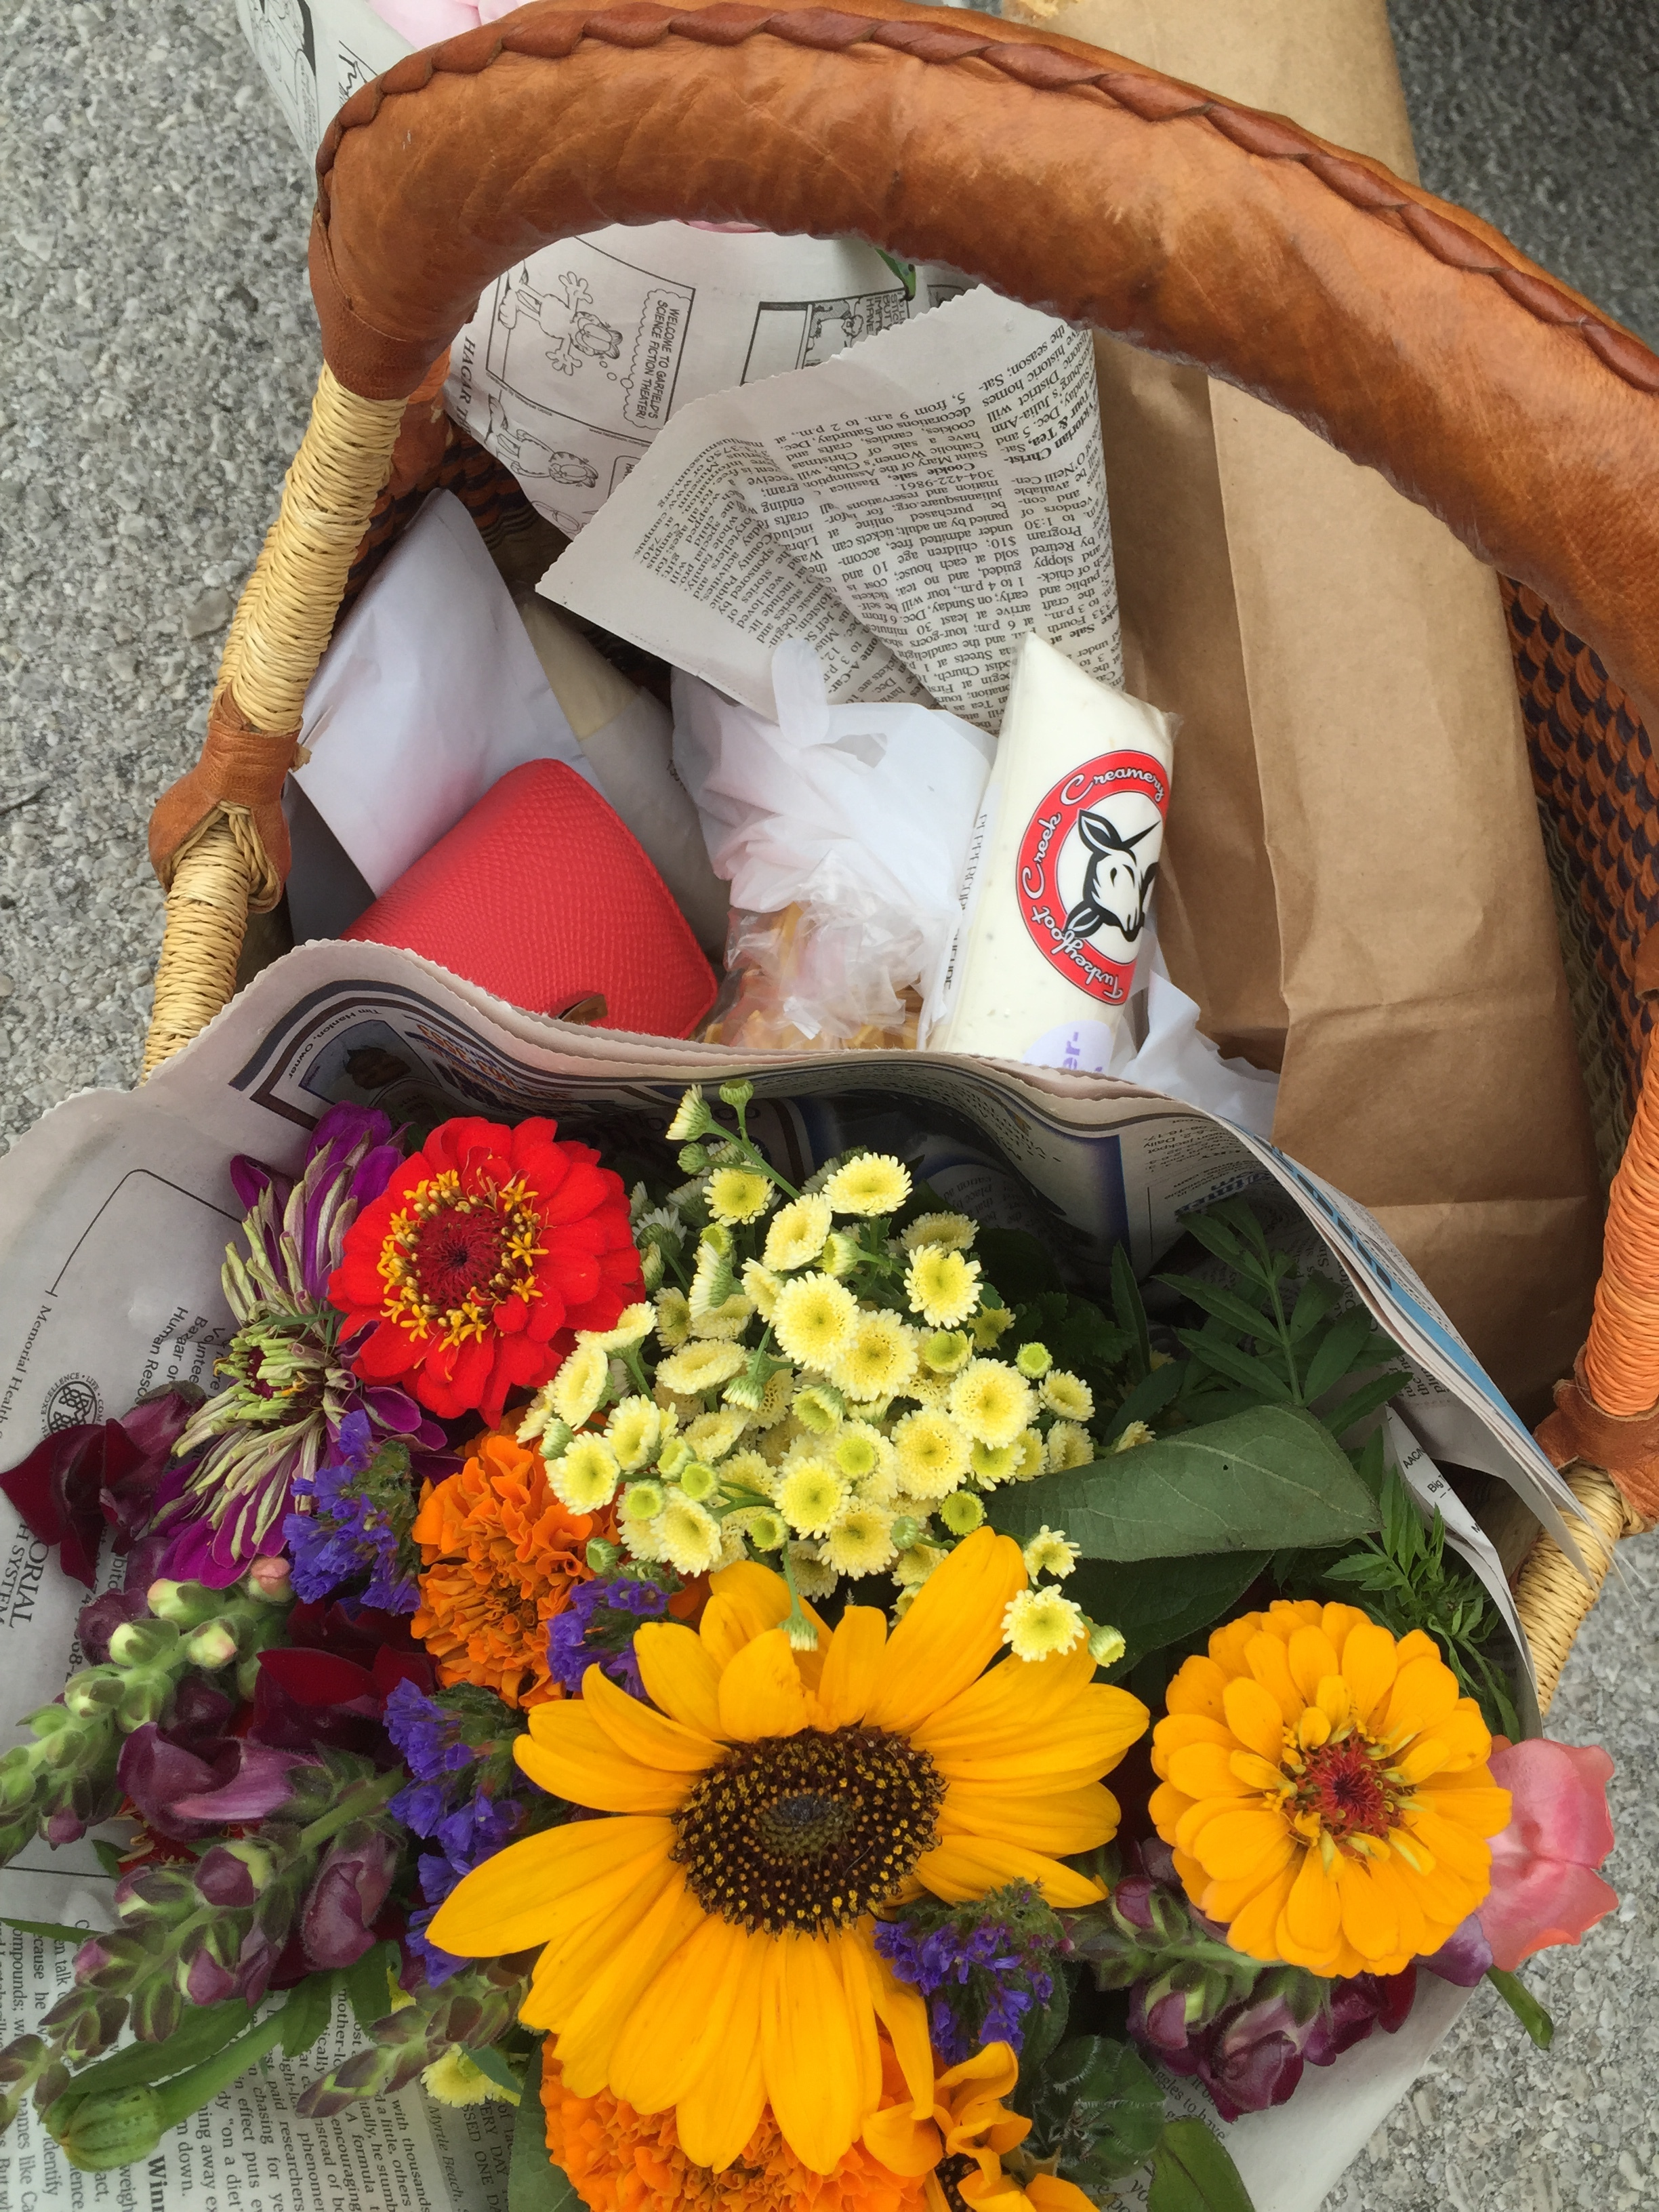 Basket of food and flowers from the Toledo farmers market